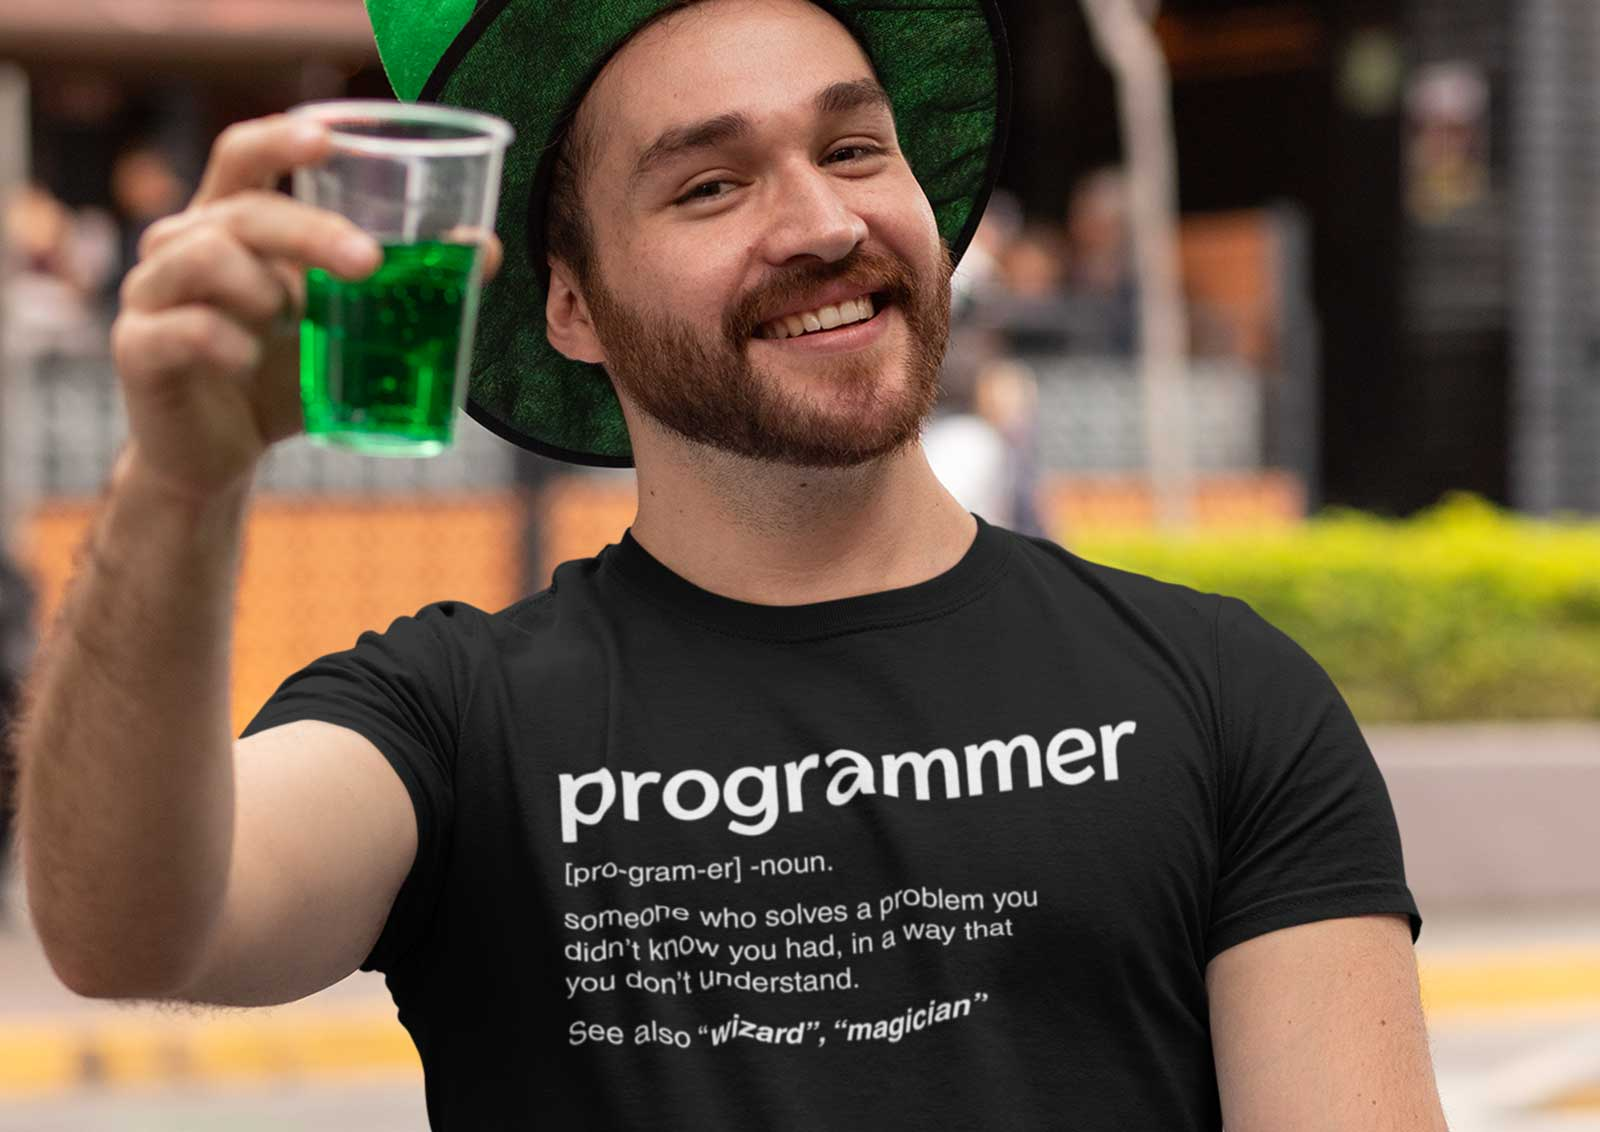 programmer t-shirts for india